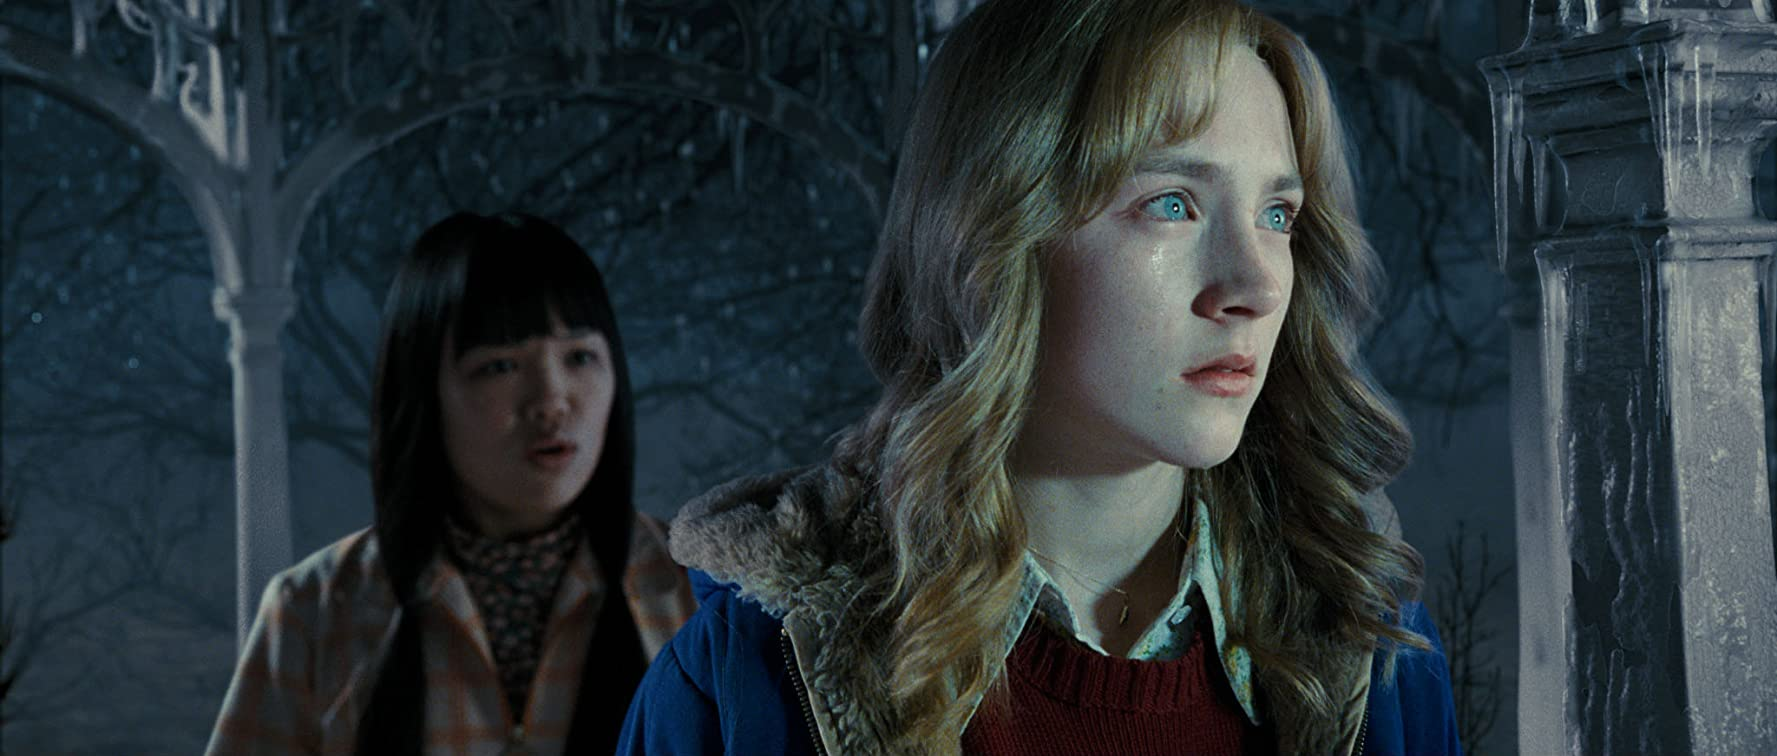 Saoirse Ronan and Nikki SooHoo in The Lovely Bones (2009)